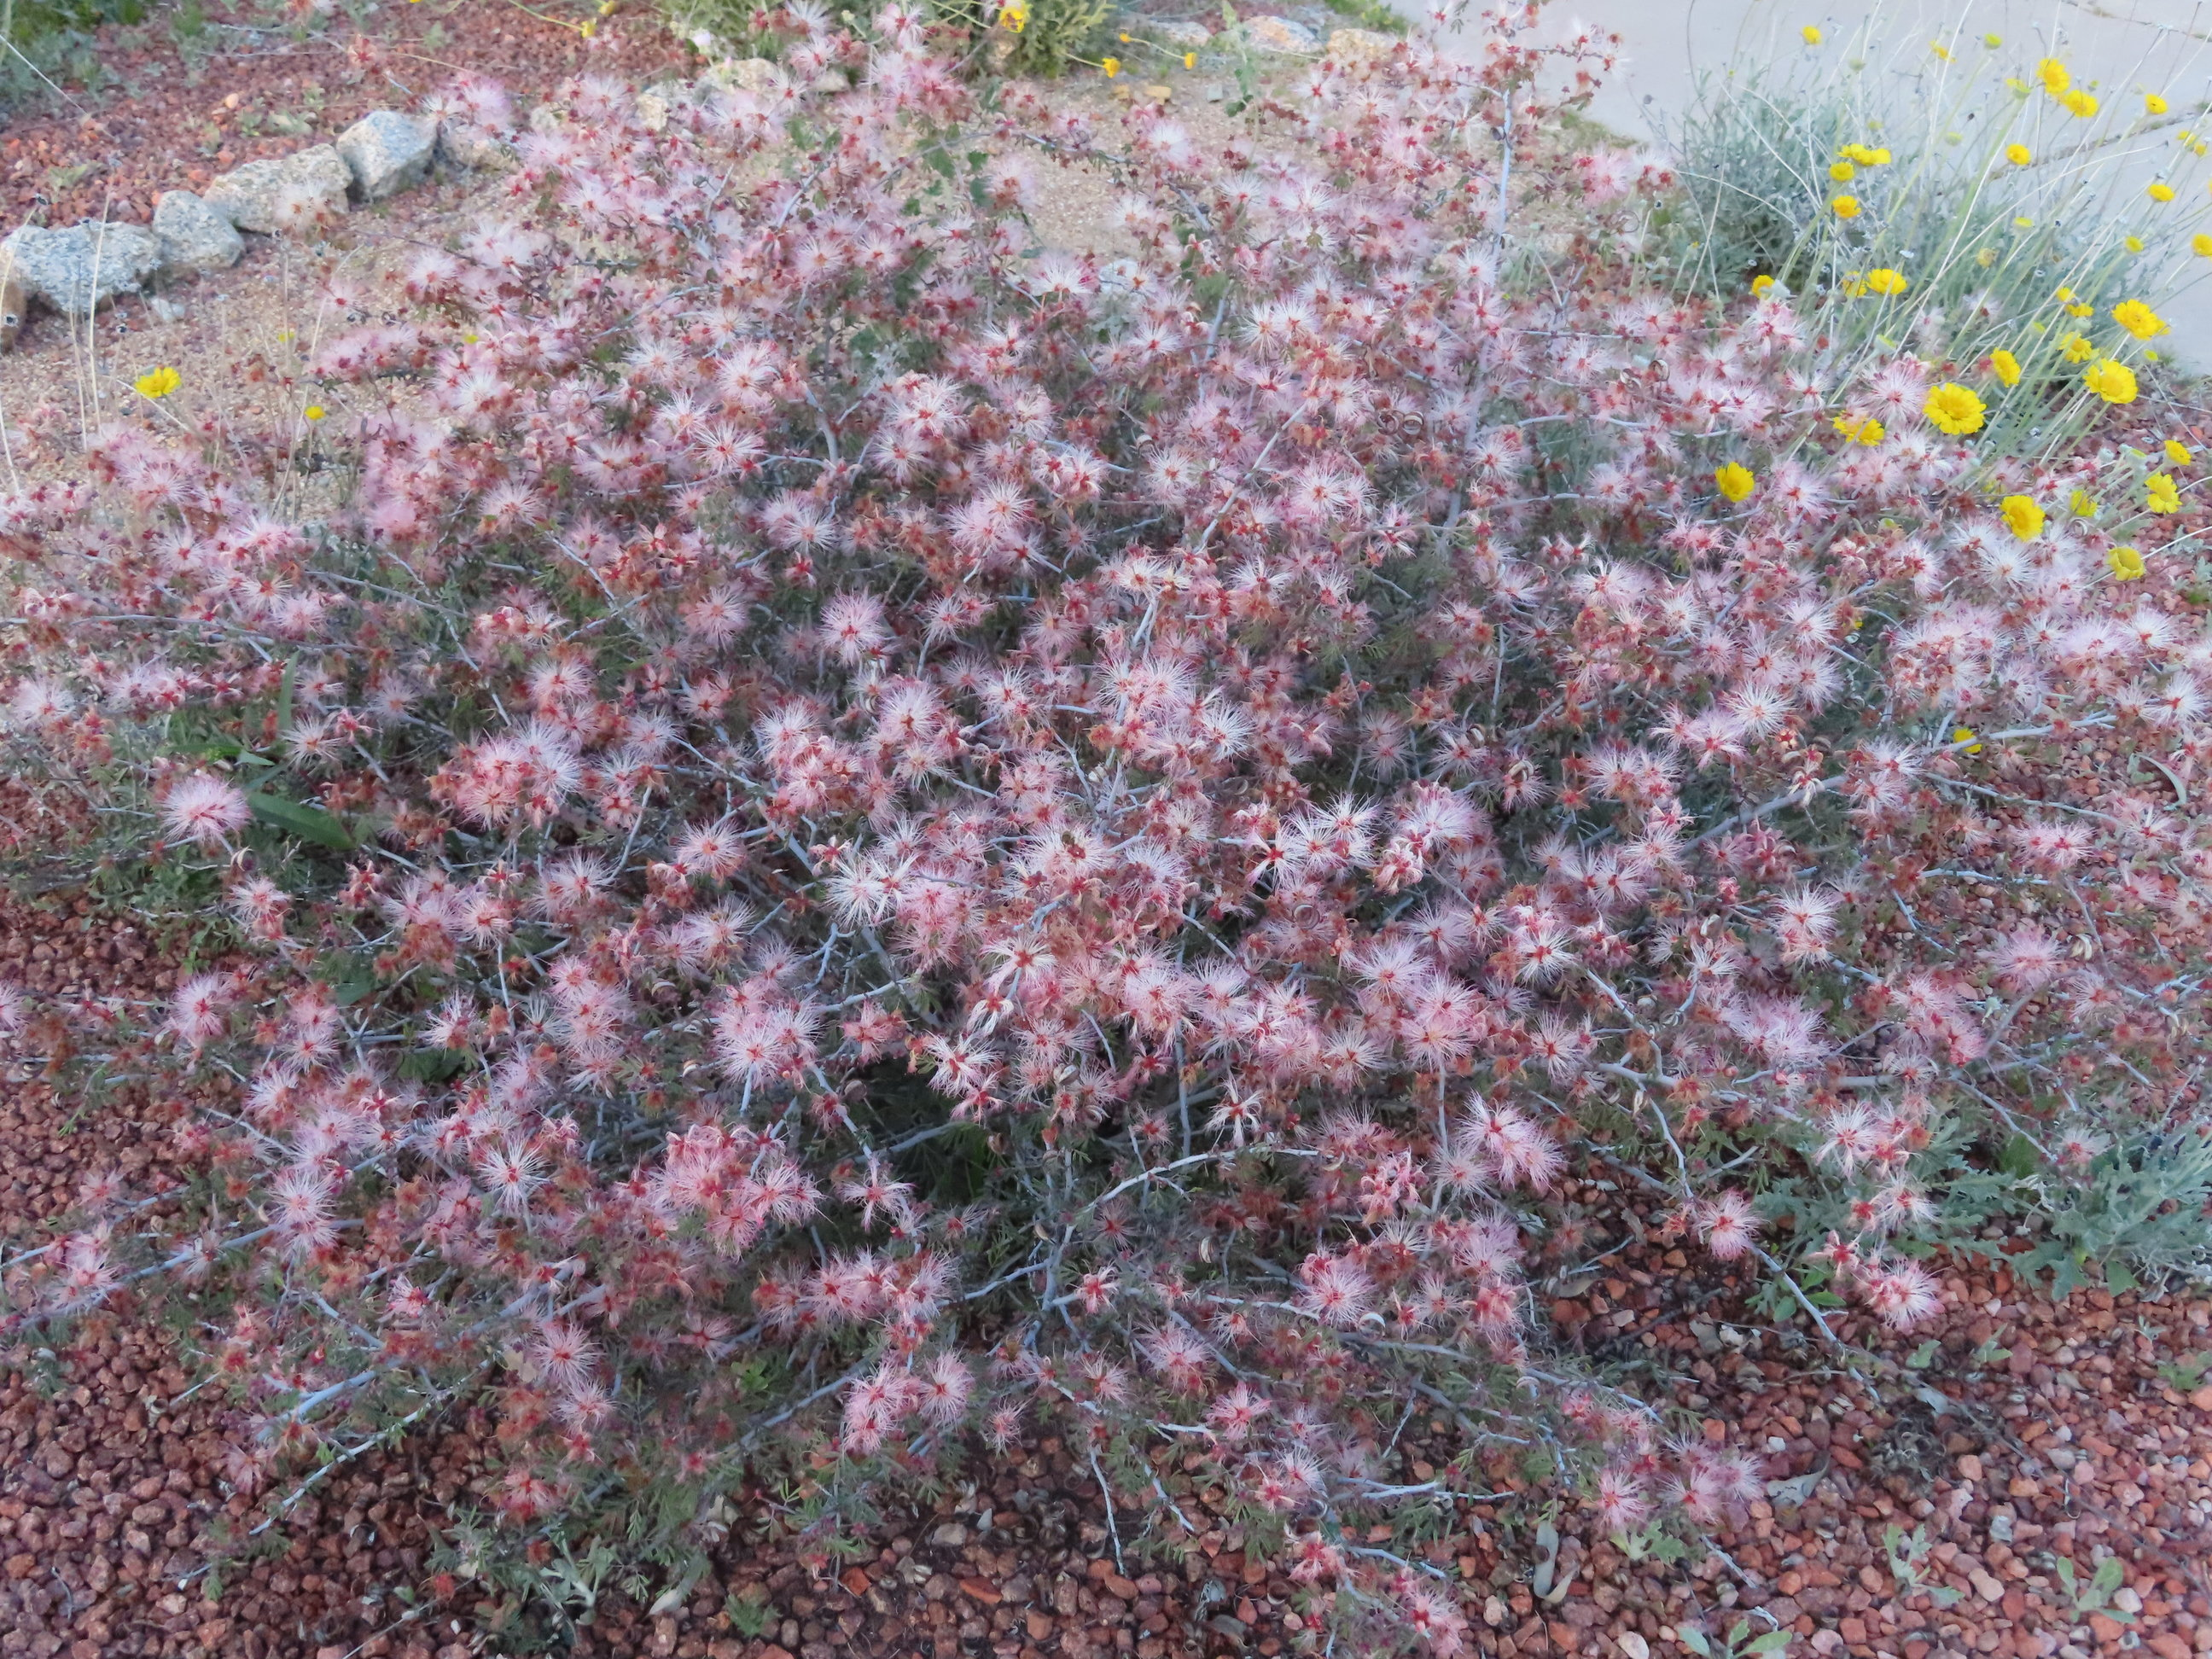 Pink fairy duster plant